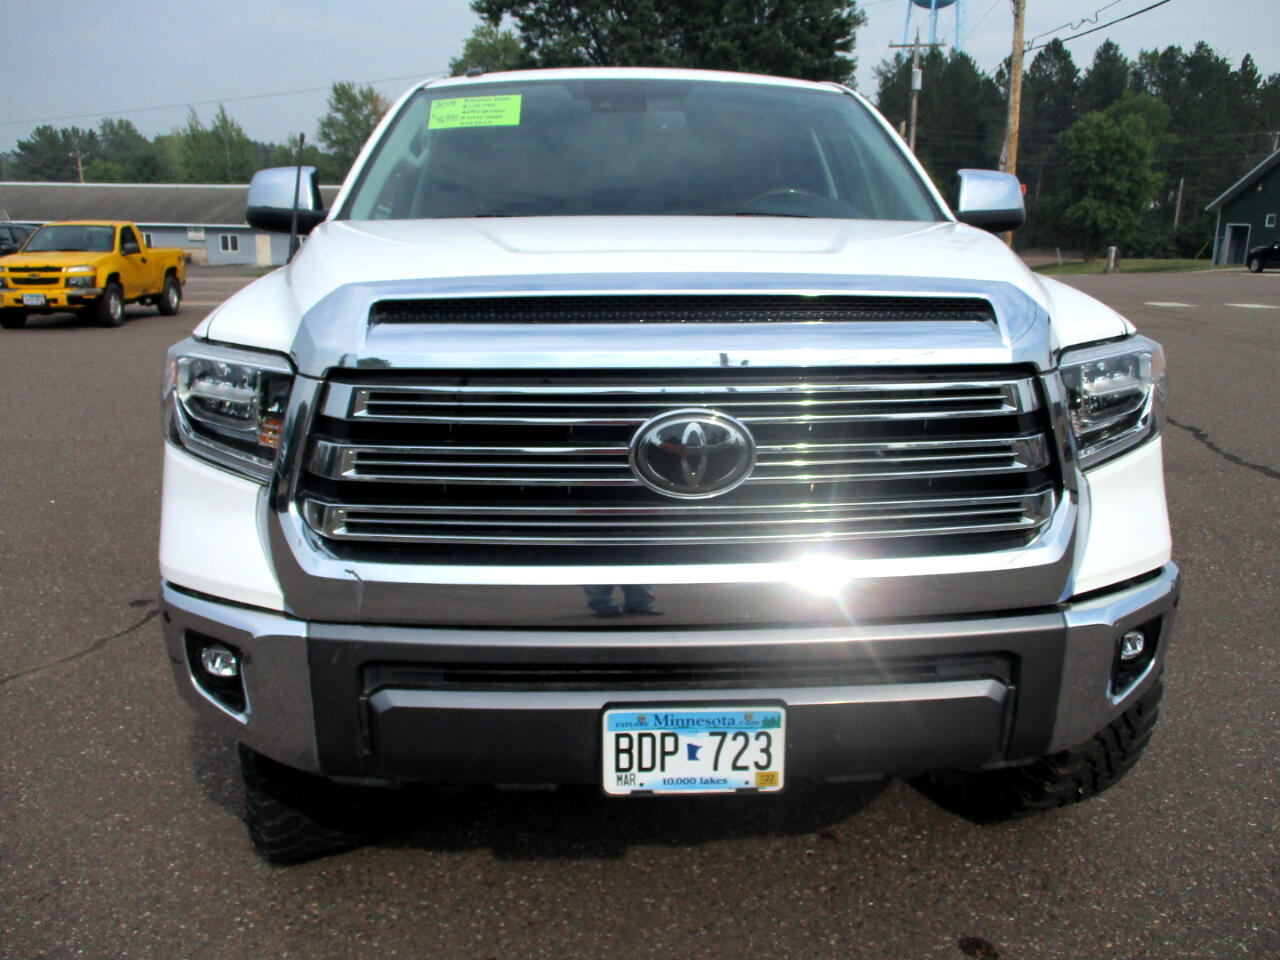 Used 2018 Toyota Tundra 1794 Edition with VIN 5TFAW5F19JX738856 for sale in Askov, Minnesota